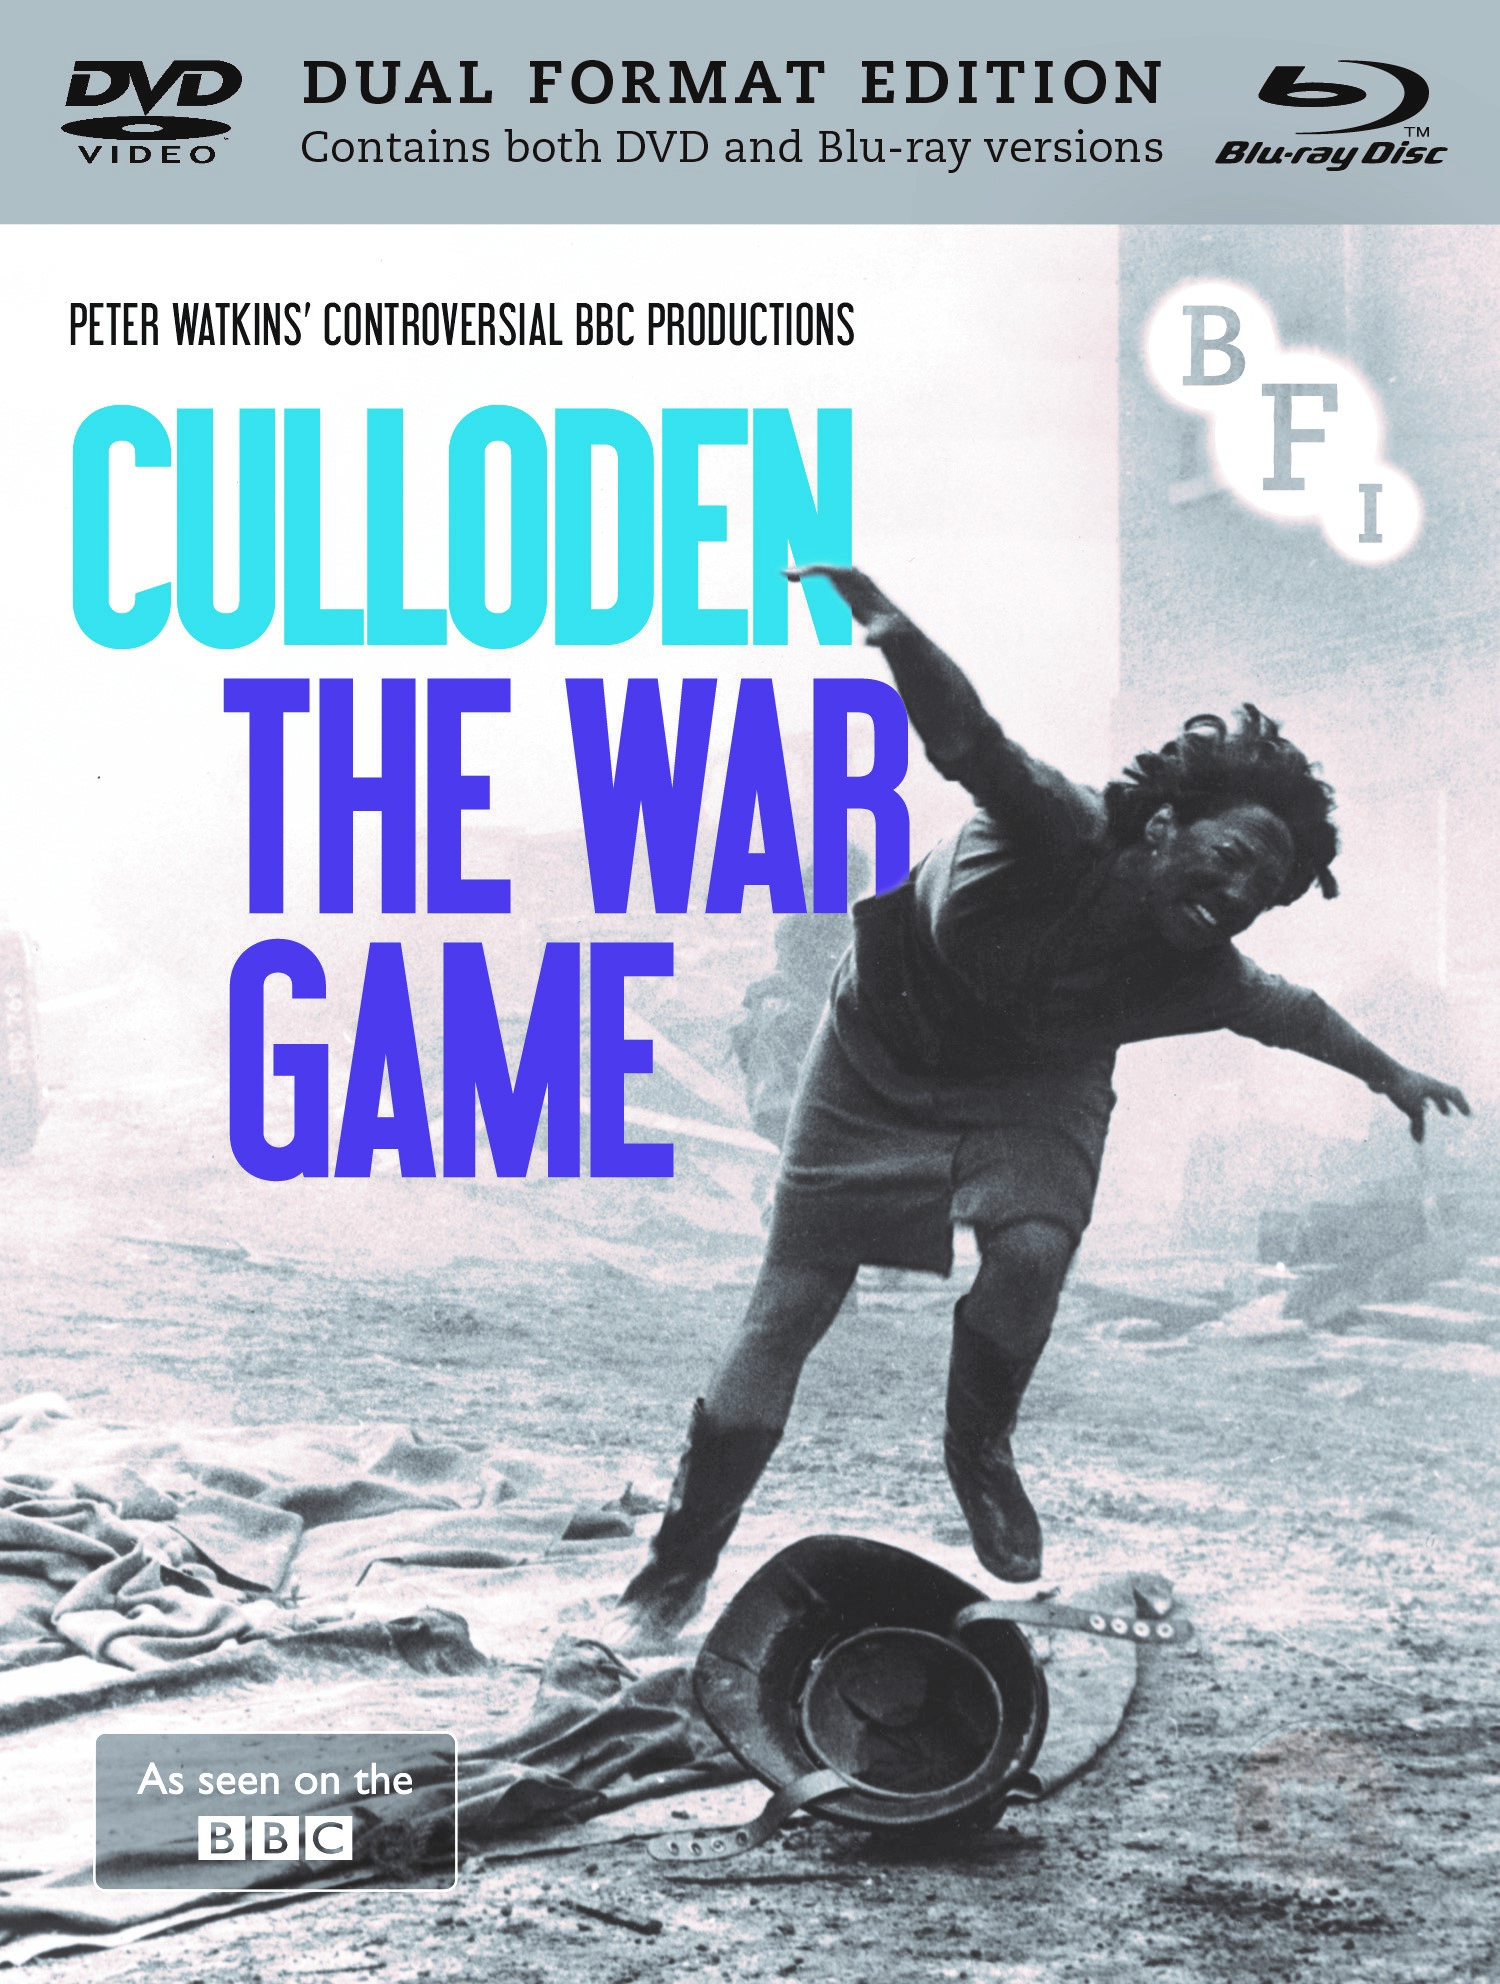 Buy Culloden + The War Game (Dual Format Edition)